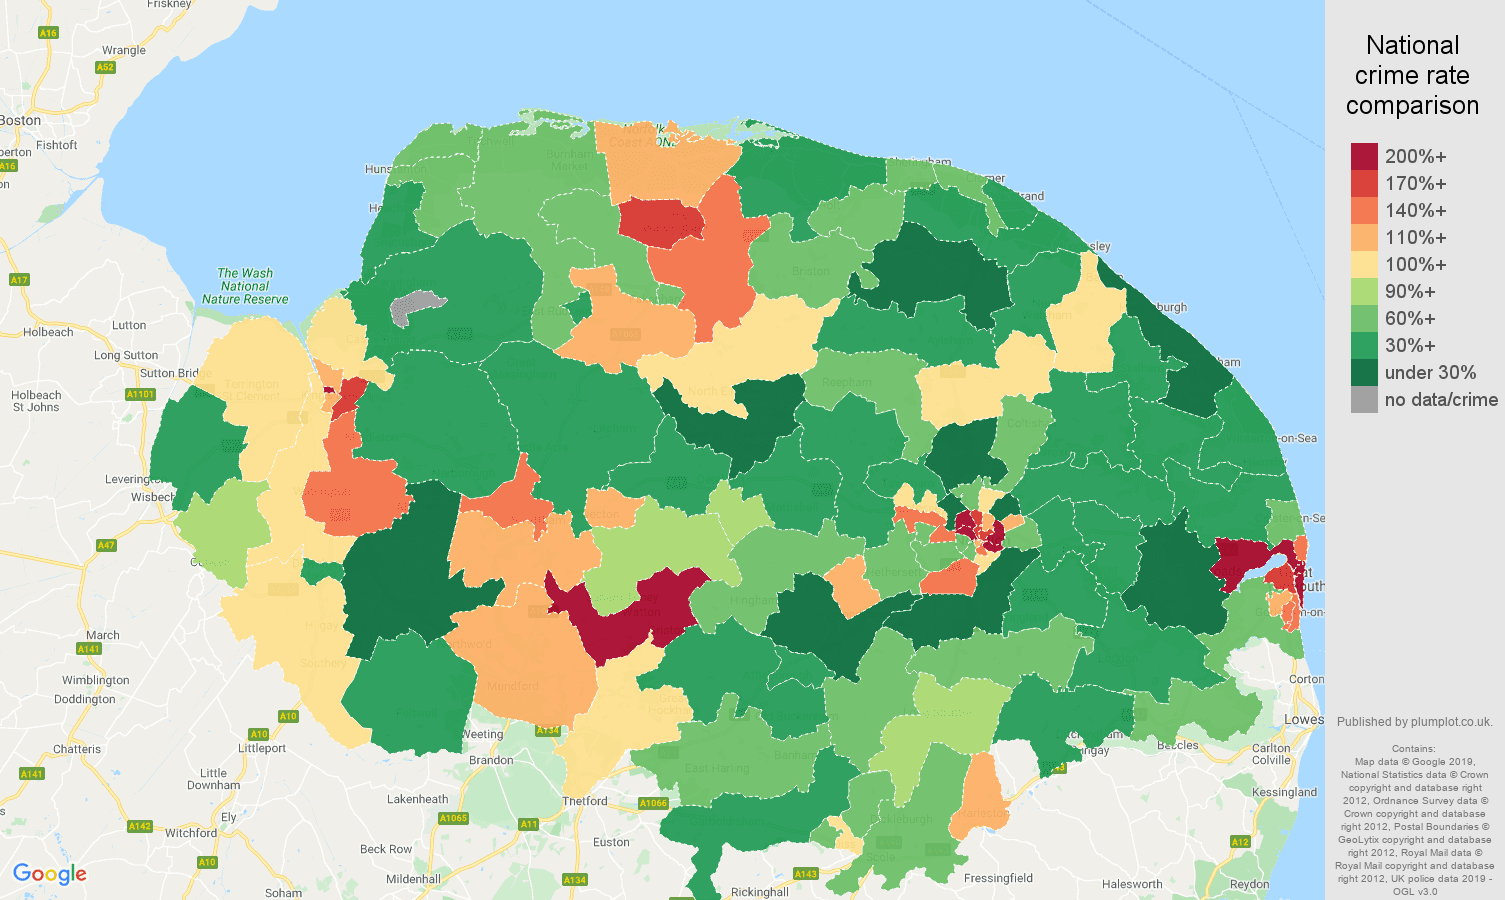 Norfolk other crime rate comparison map